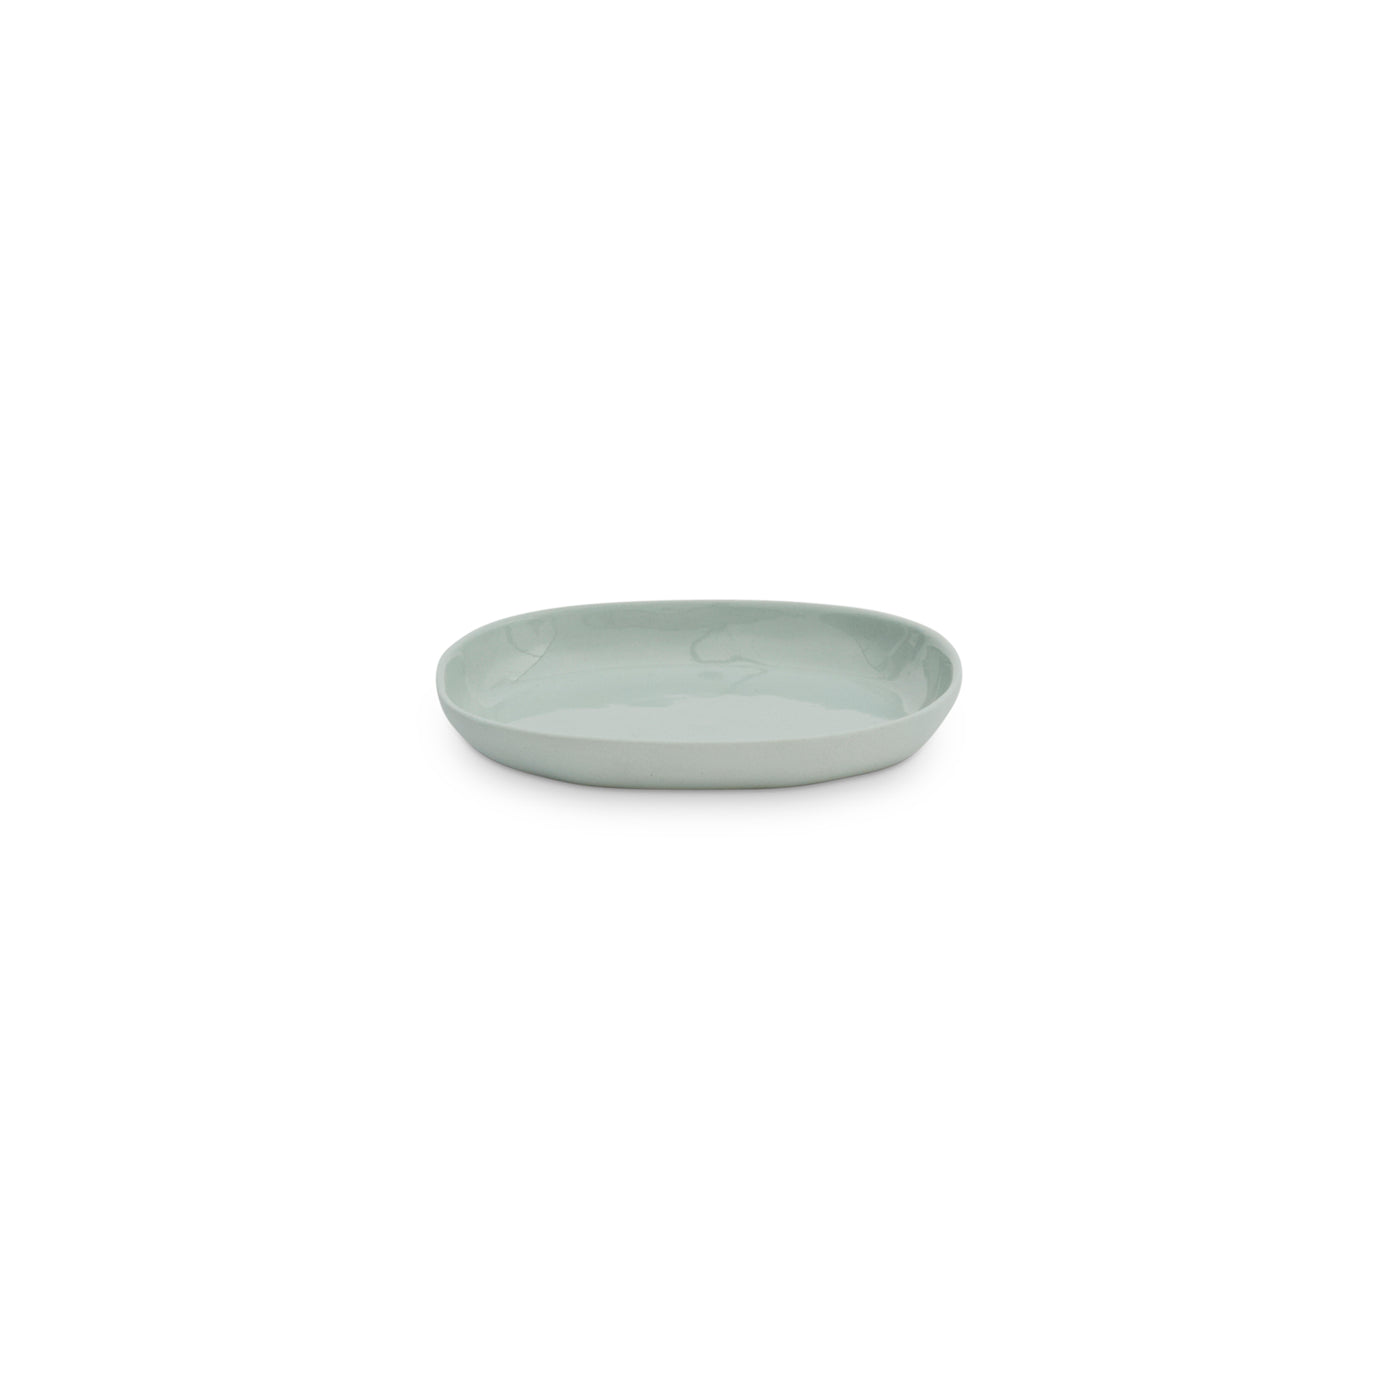 Cloud Oval Plate - Small